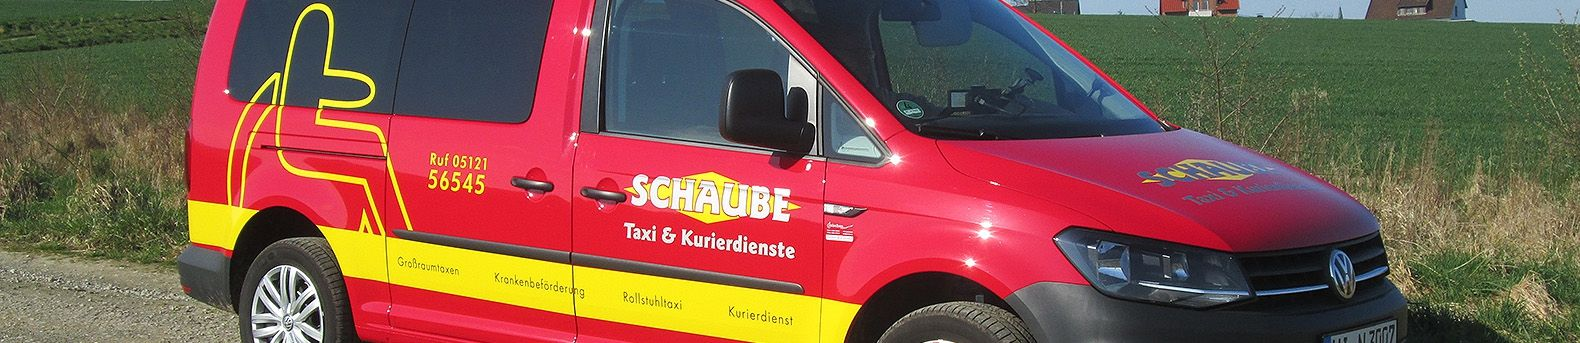 leistungen taxi schaube taxi kurierdienst in. Black Bedroom Furniture Sets. Home Design Ideas